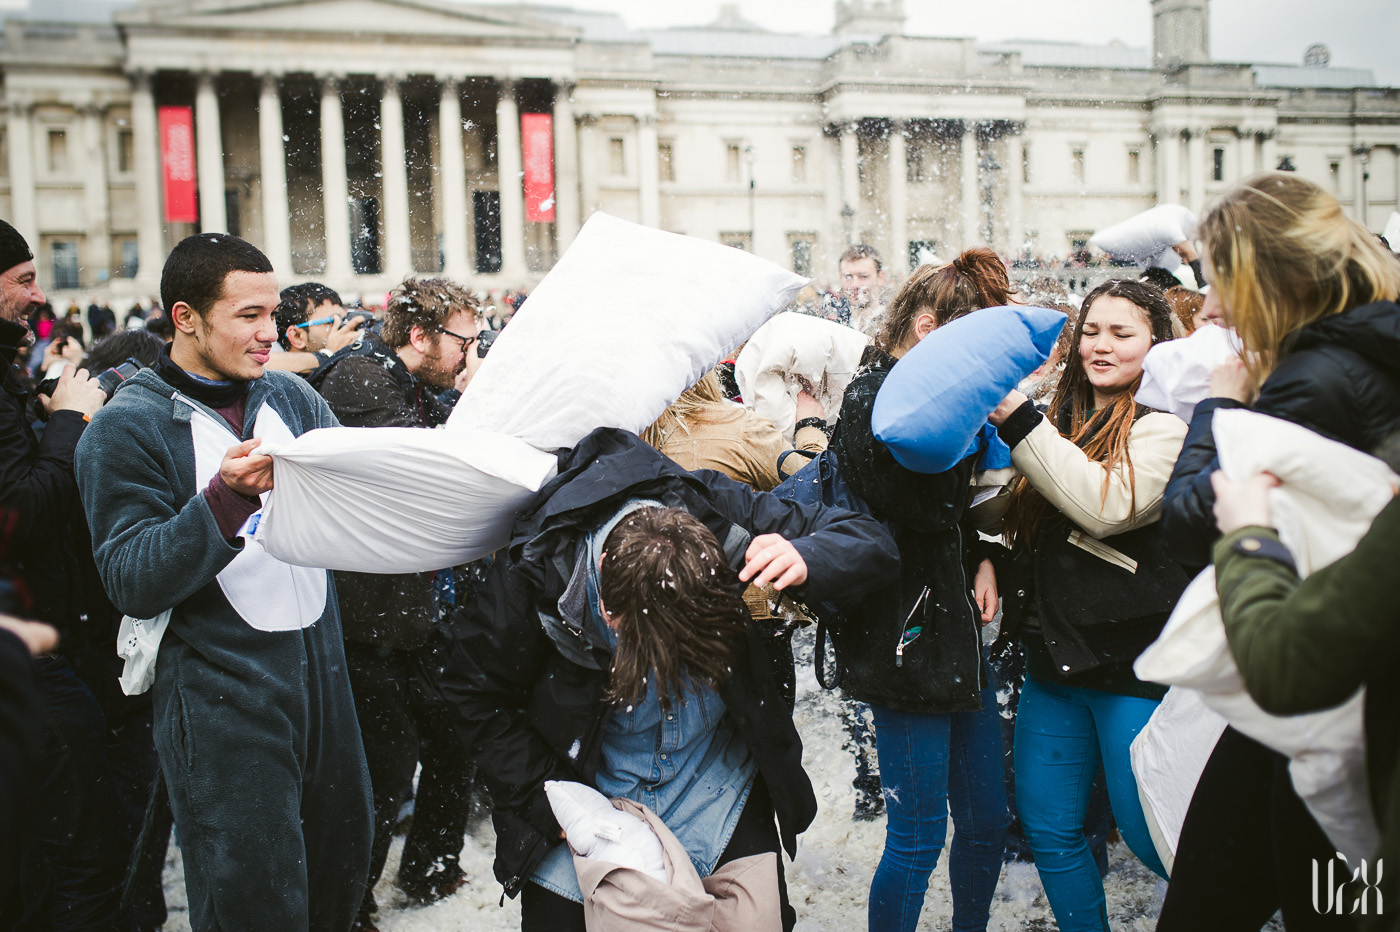 International Pillow Fight Day In London 2015 Street Photography Pagalviu Musis 13